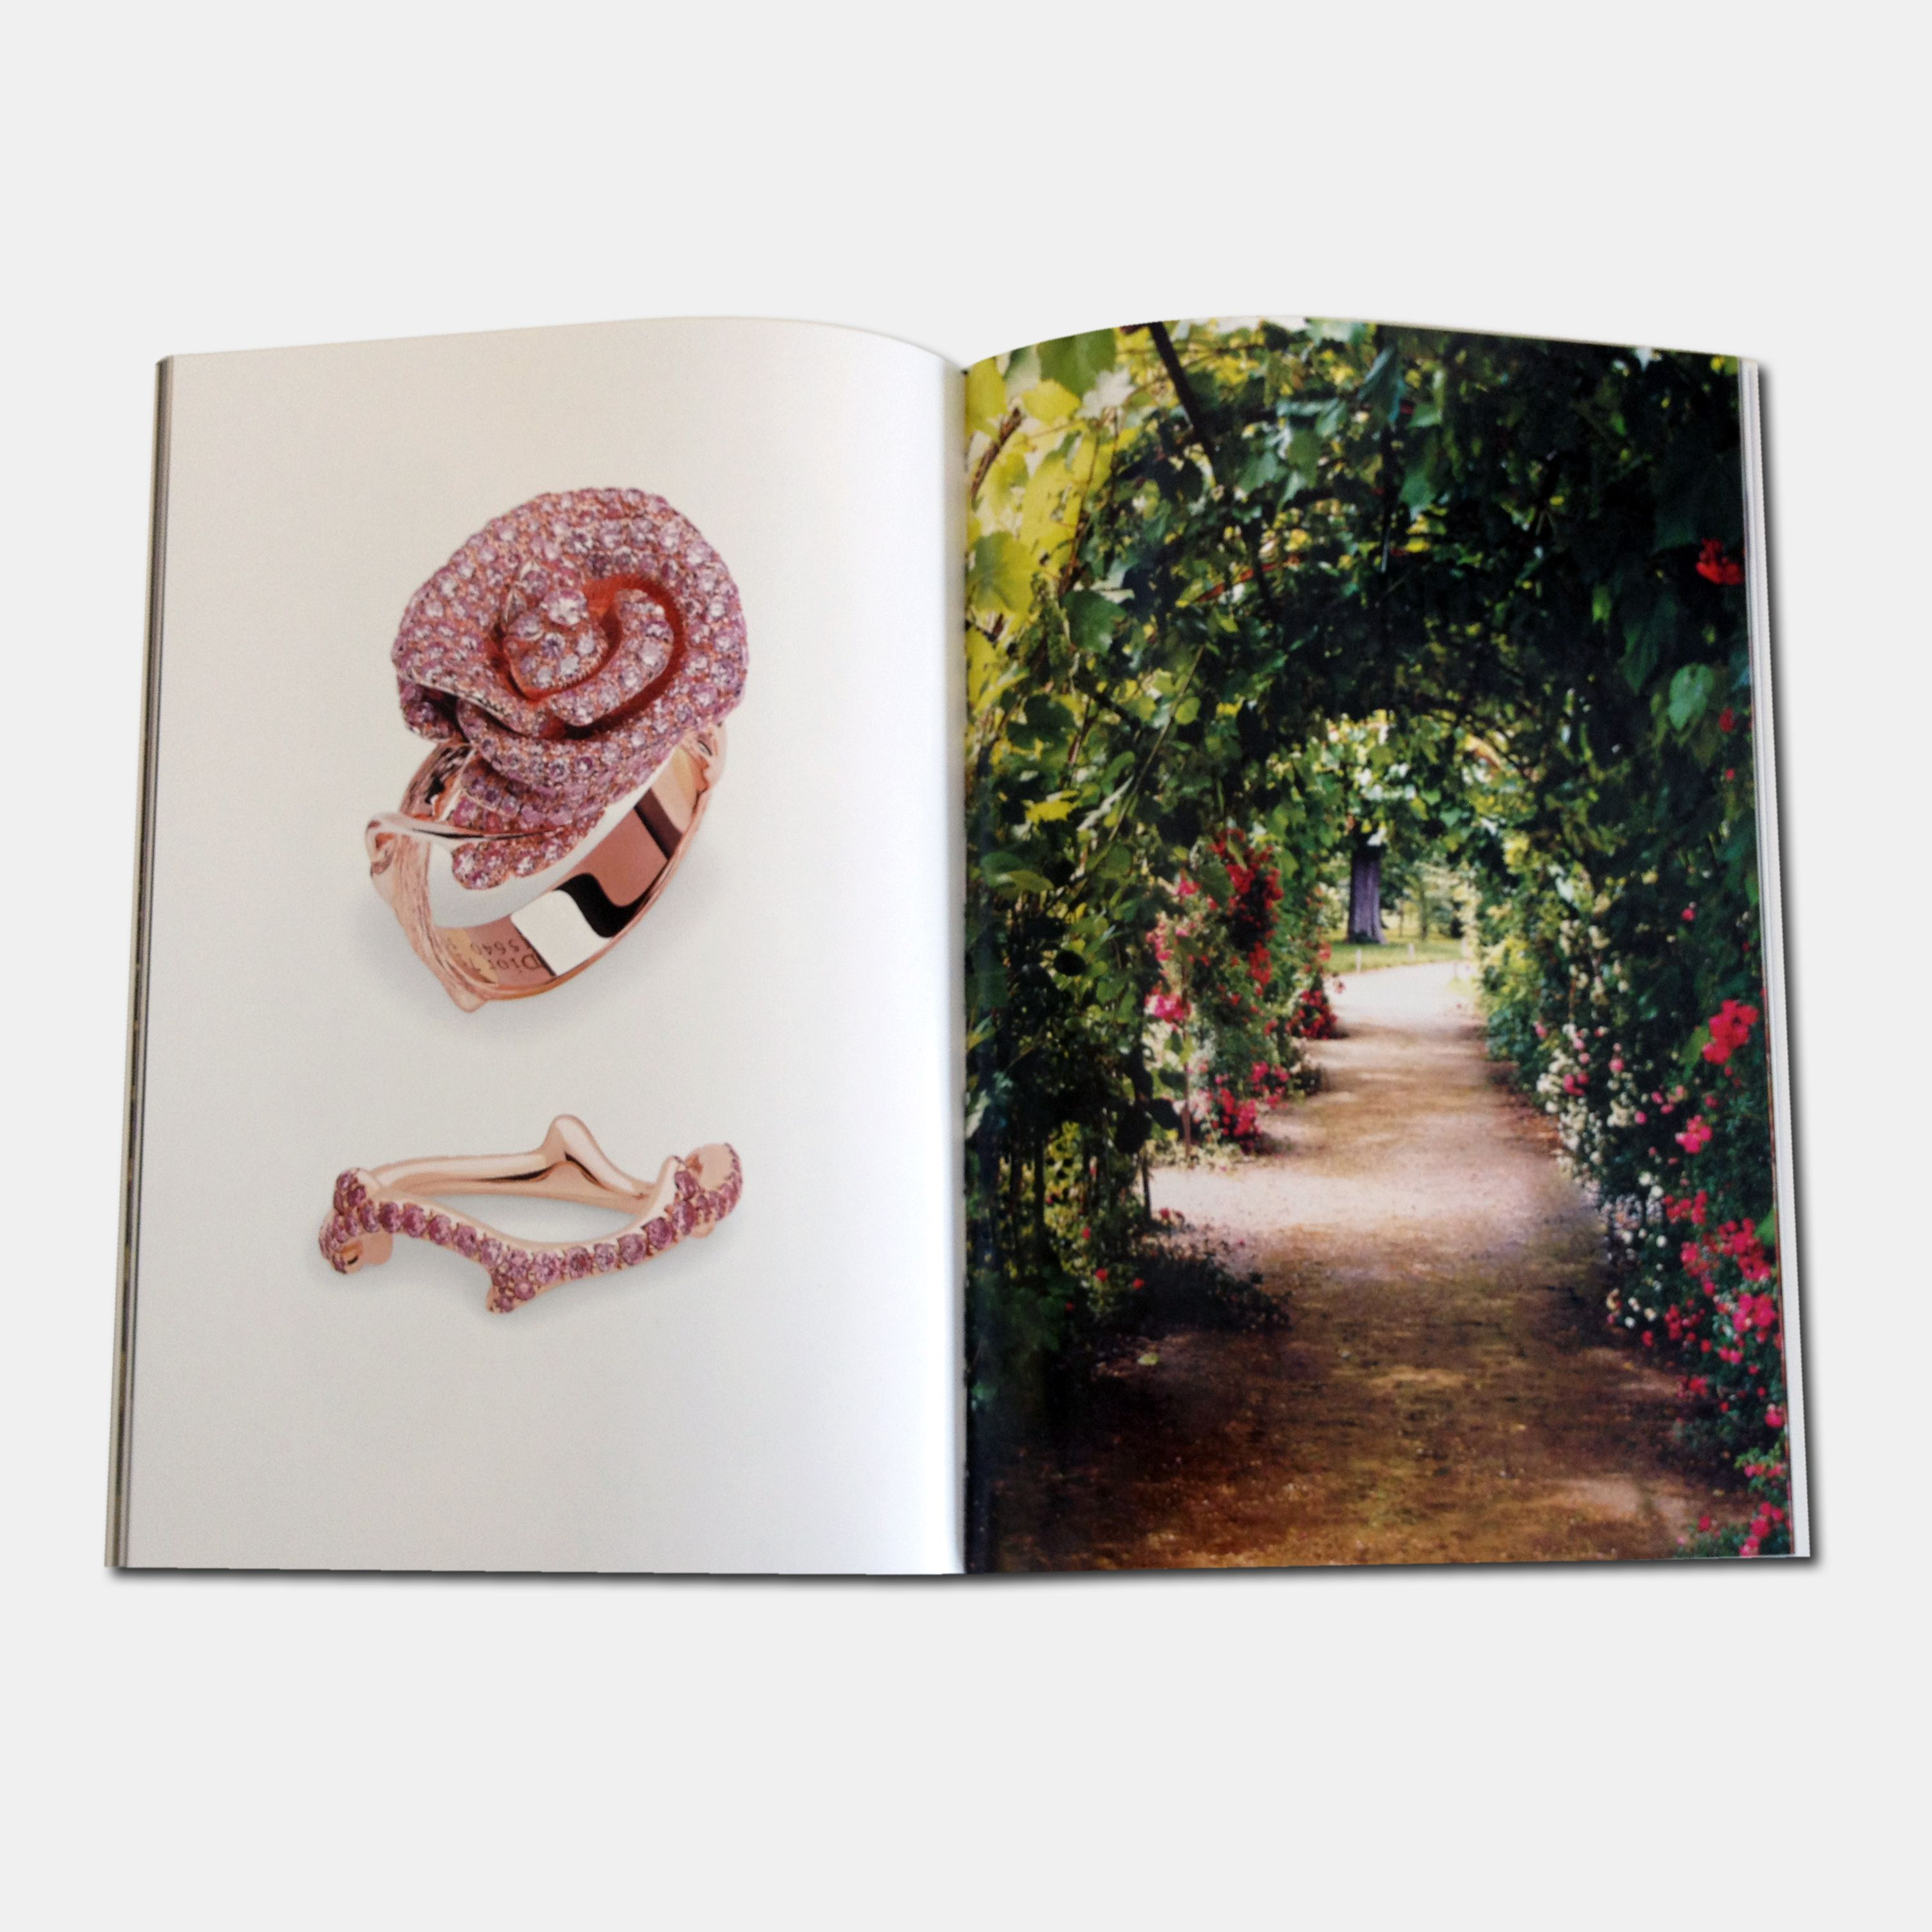 Discover 'Dior', a set of 3 volumes revealing exclusive stories about many decades of   Fashion, Jewellery and Perfumes of the House.